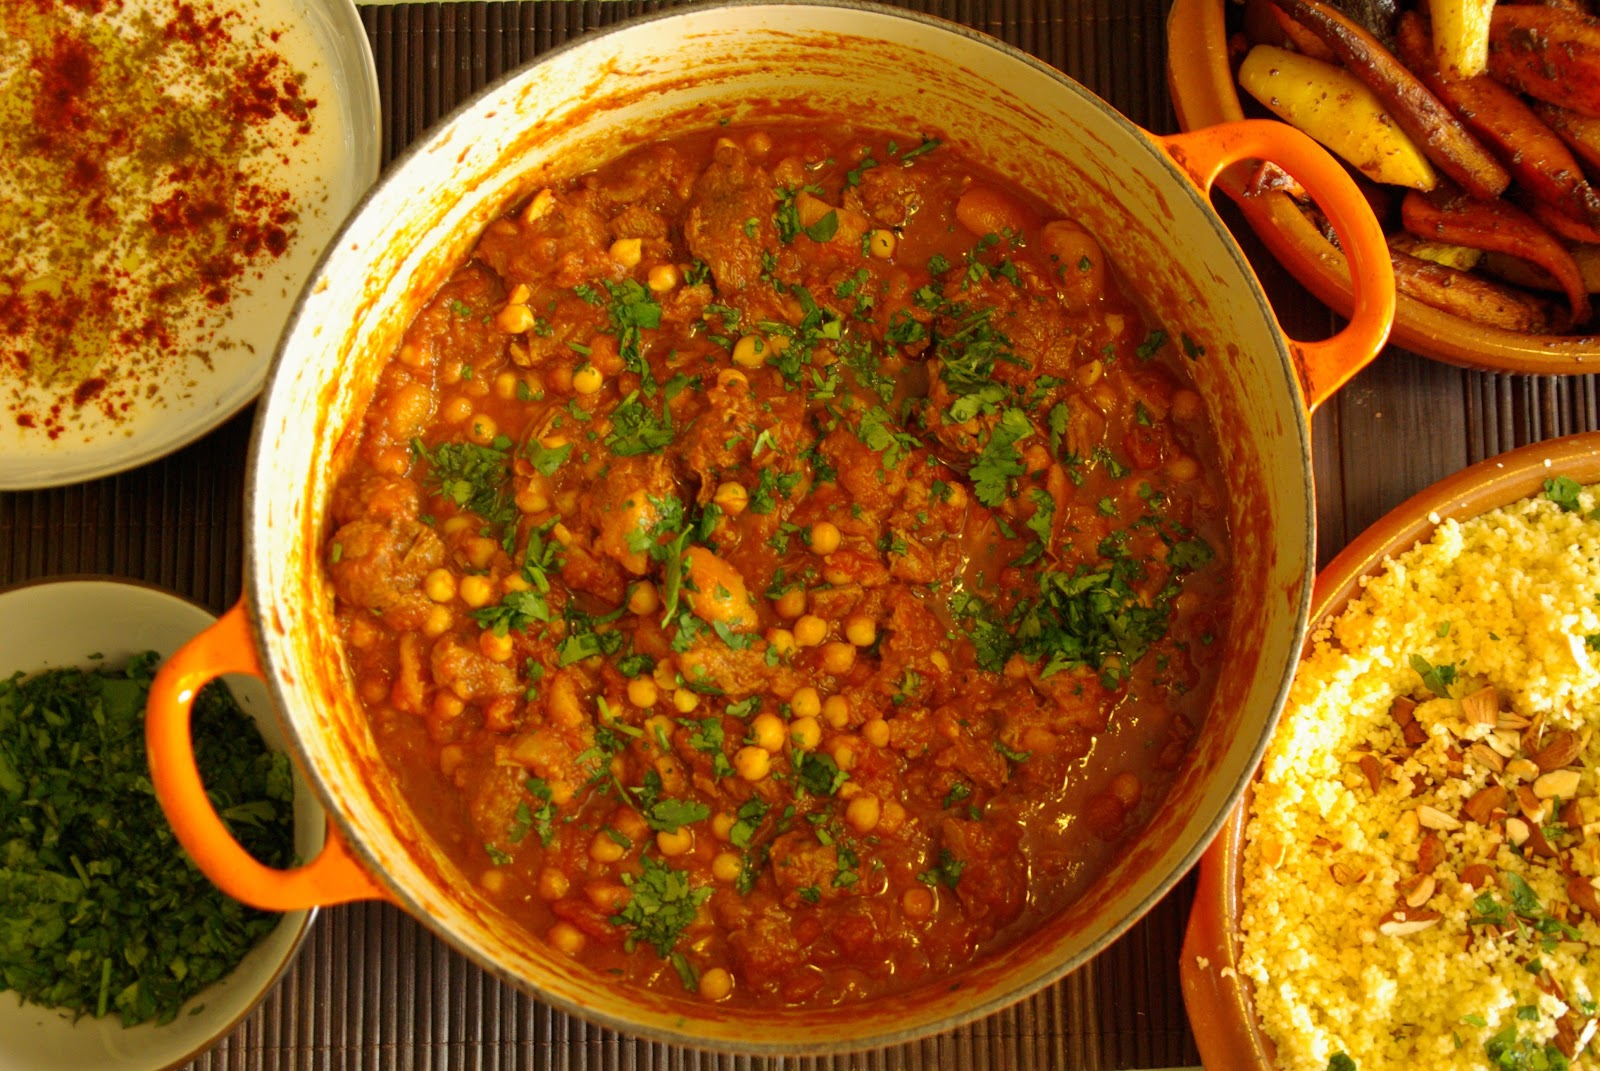 Well Worn Whisk | Family food blog: Lamb, apricot and chick pea tagine